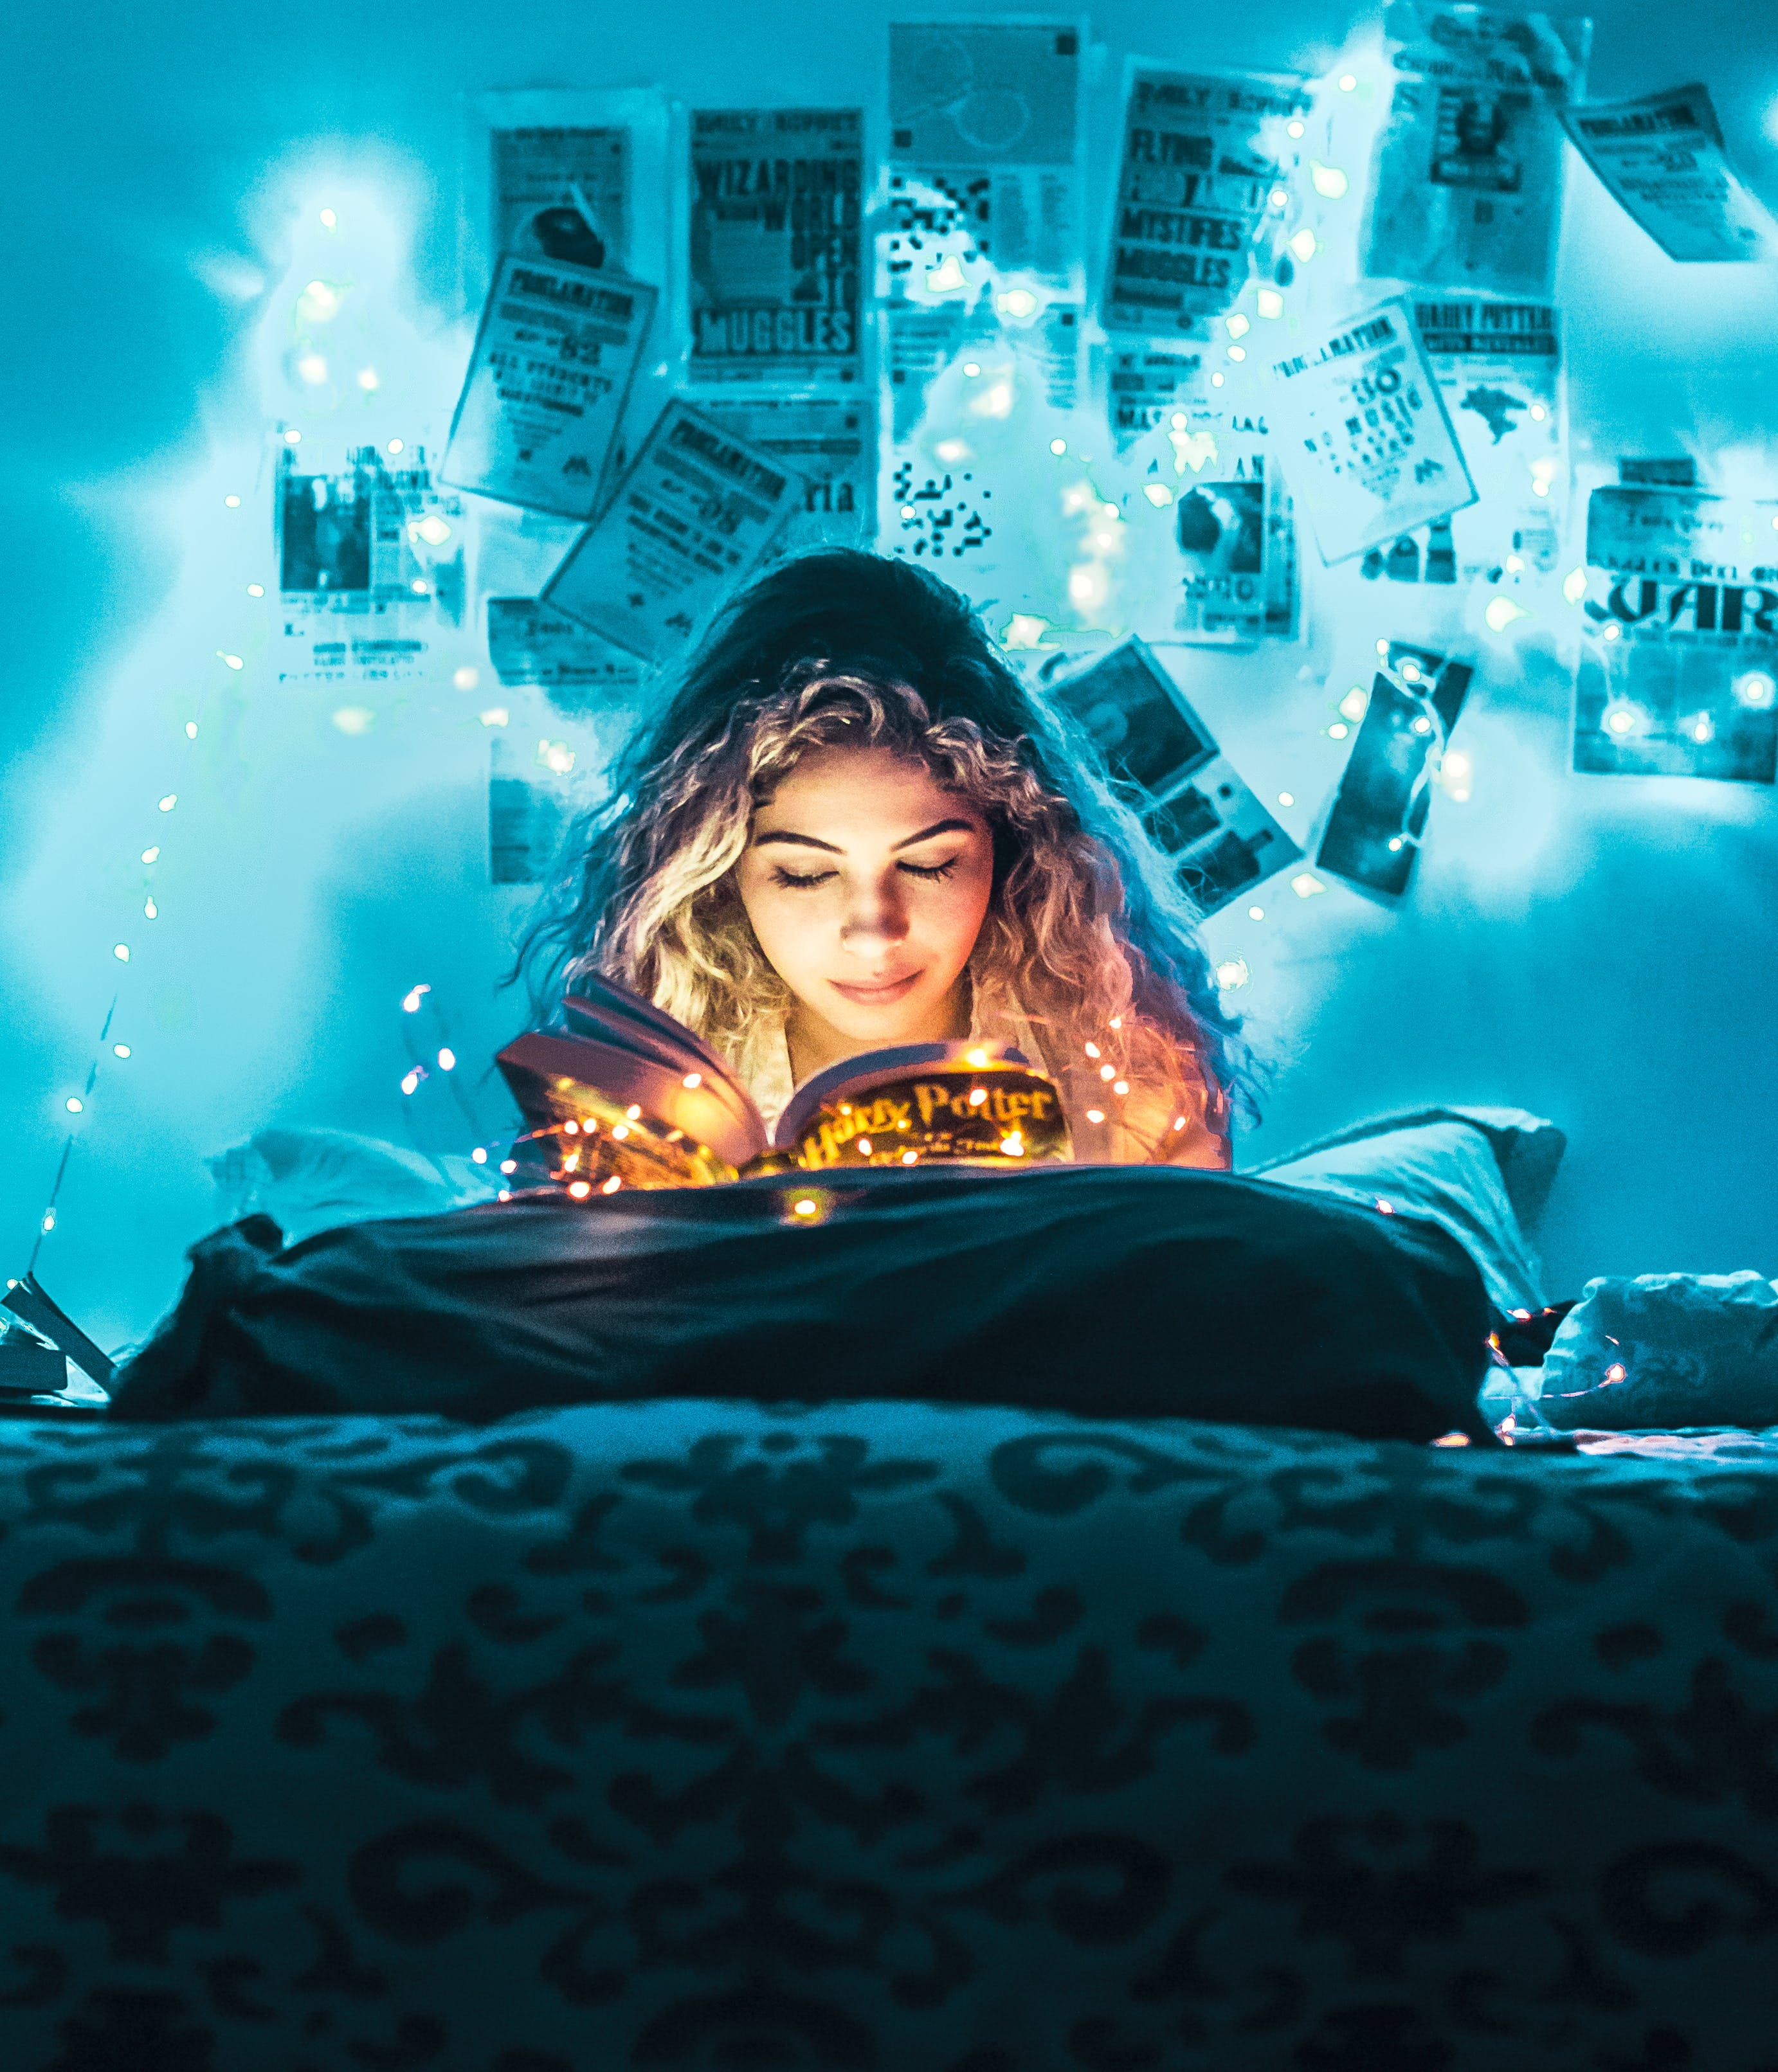 Woman Reading Harry Potter Book While Lying In Bed